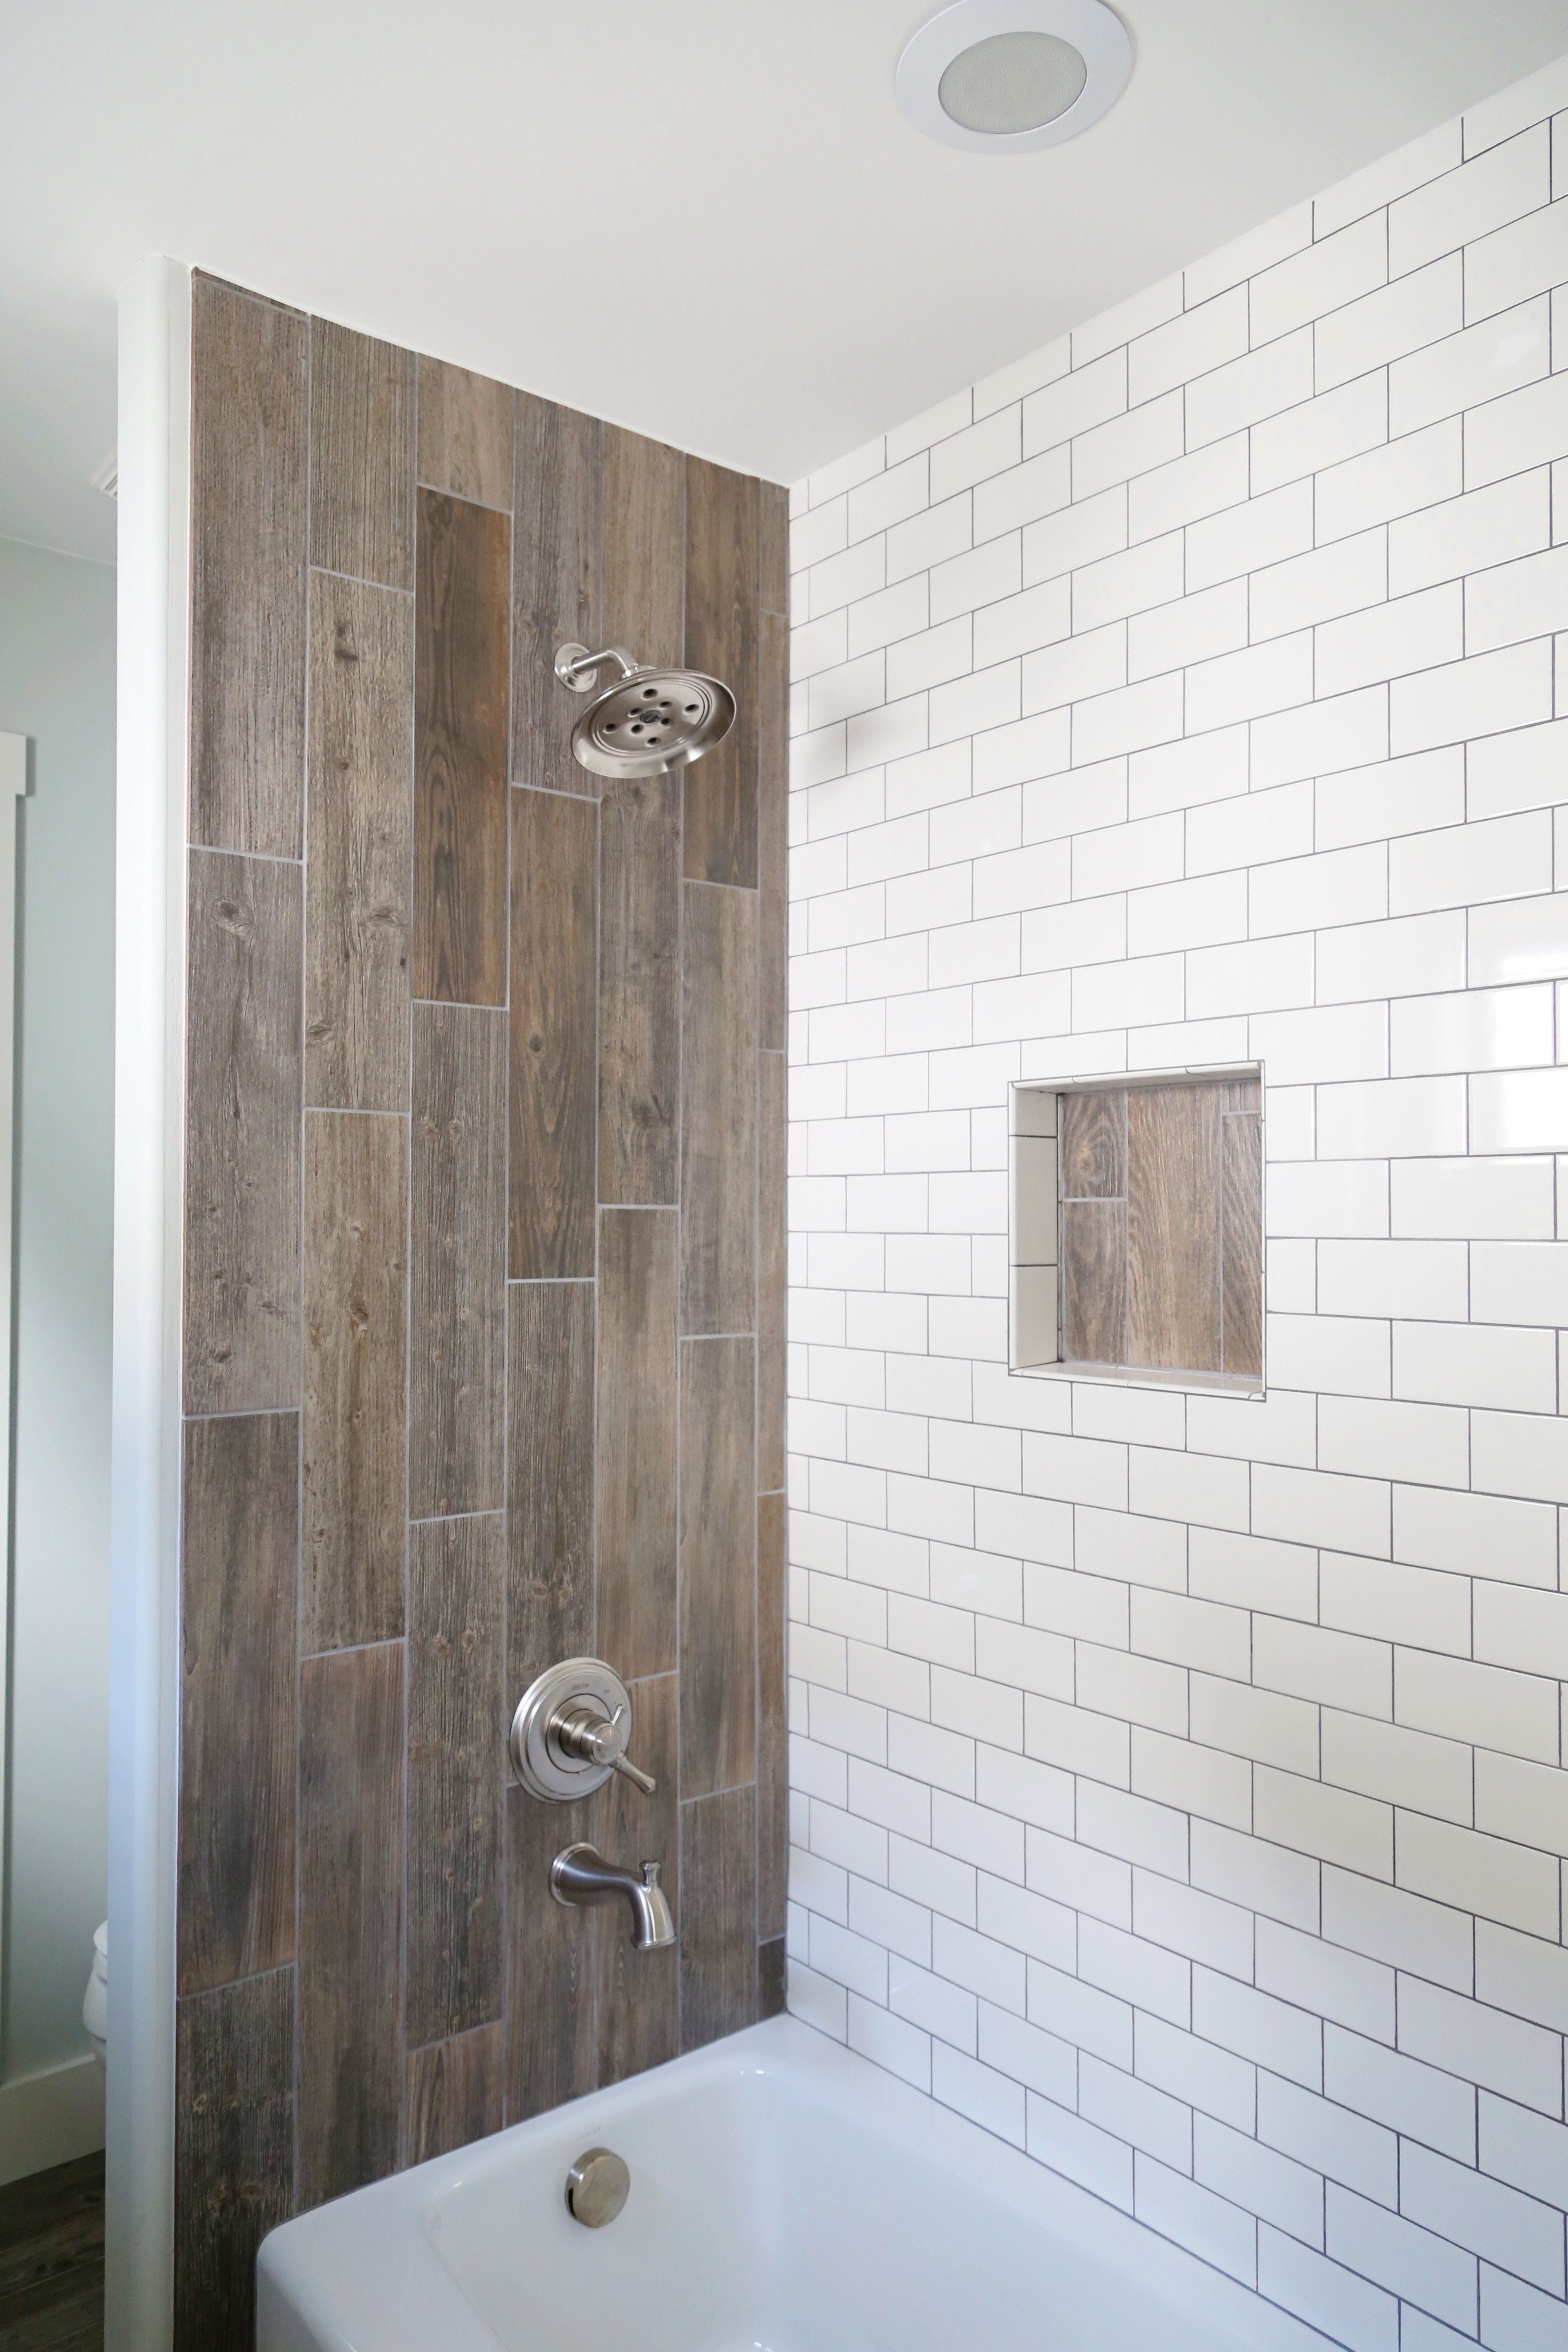 Farmhouse Bathroom Renovation | STYLED WITH DUK LINER ...